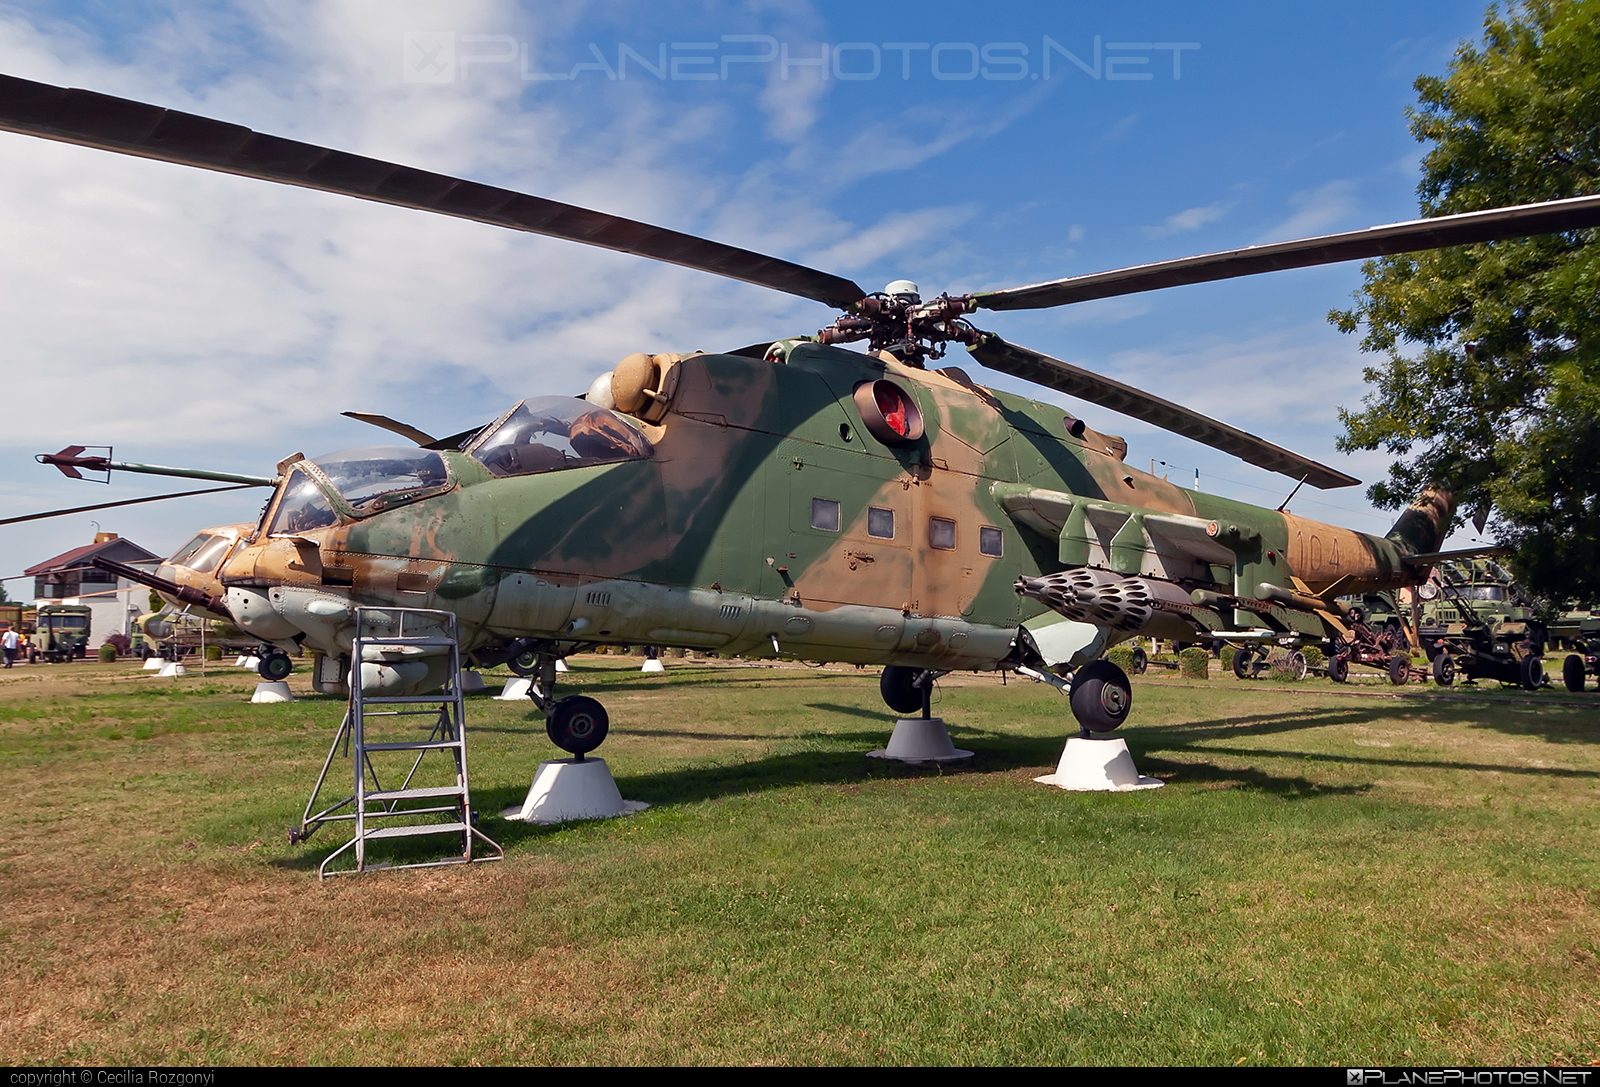 Mil Mi-24D - 104 operated by Magyar Légierő (Hungarian Air Force) #hungarianairforce #magyarlegiero #mi24 #mi24d #mil #mil24 #mil24d #milhelicopters